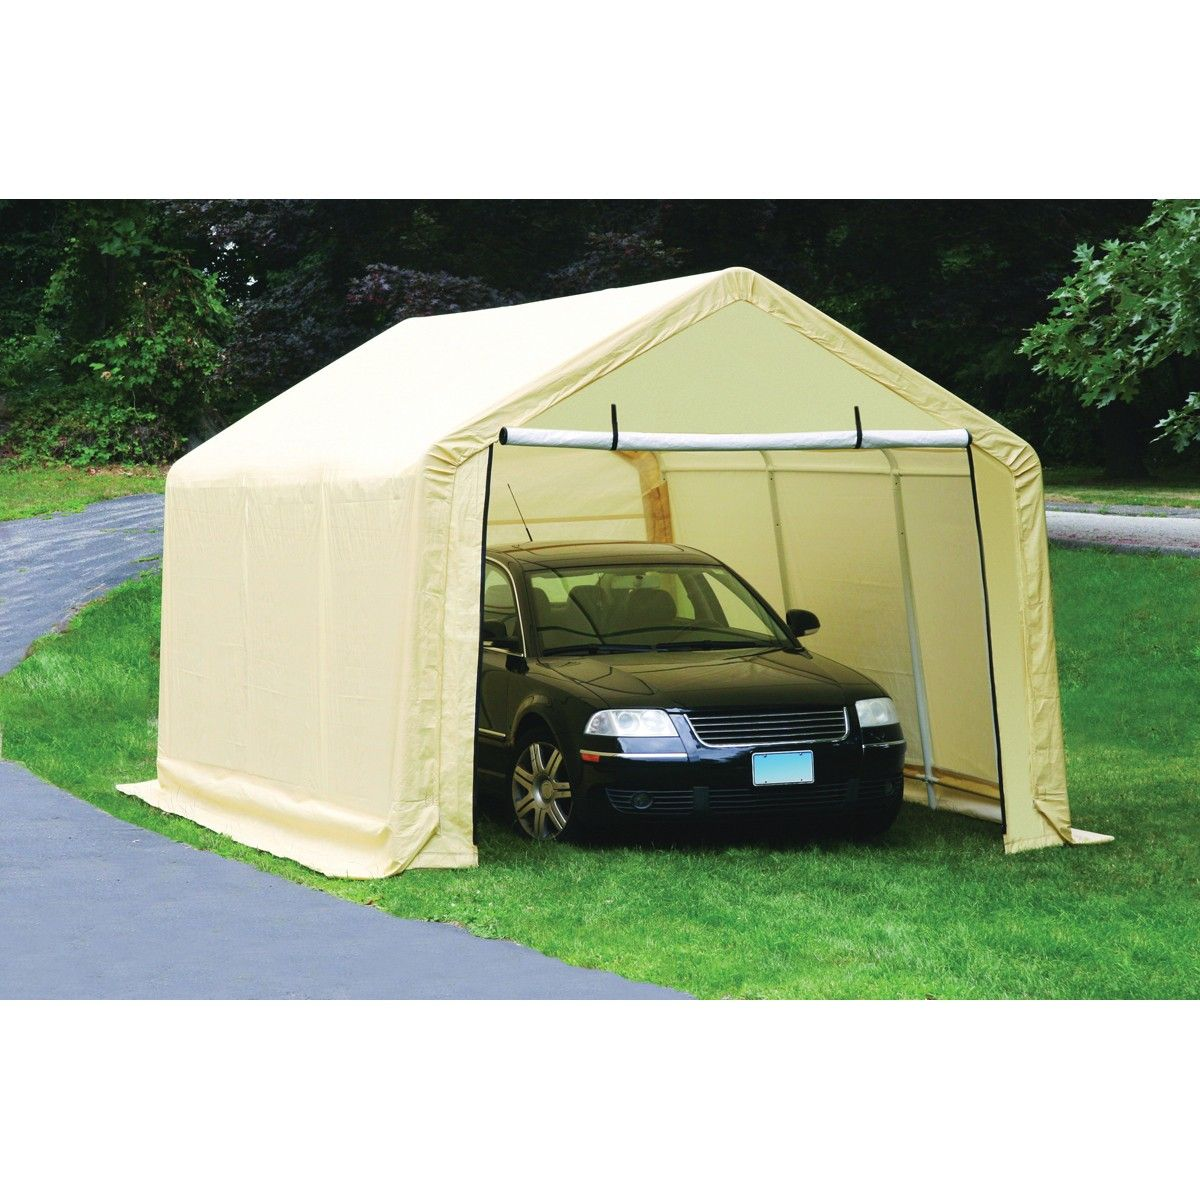 Portable Garage  sc 1 st  Pinterest & 10 ft. x 17 ft. Portable Garage | Portable garage and Storage